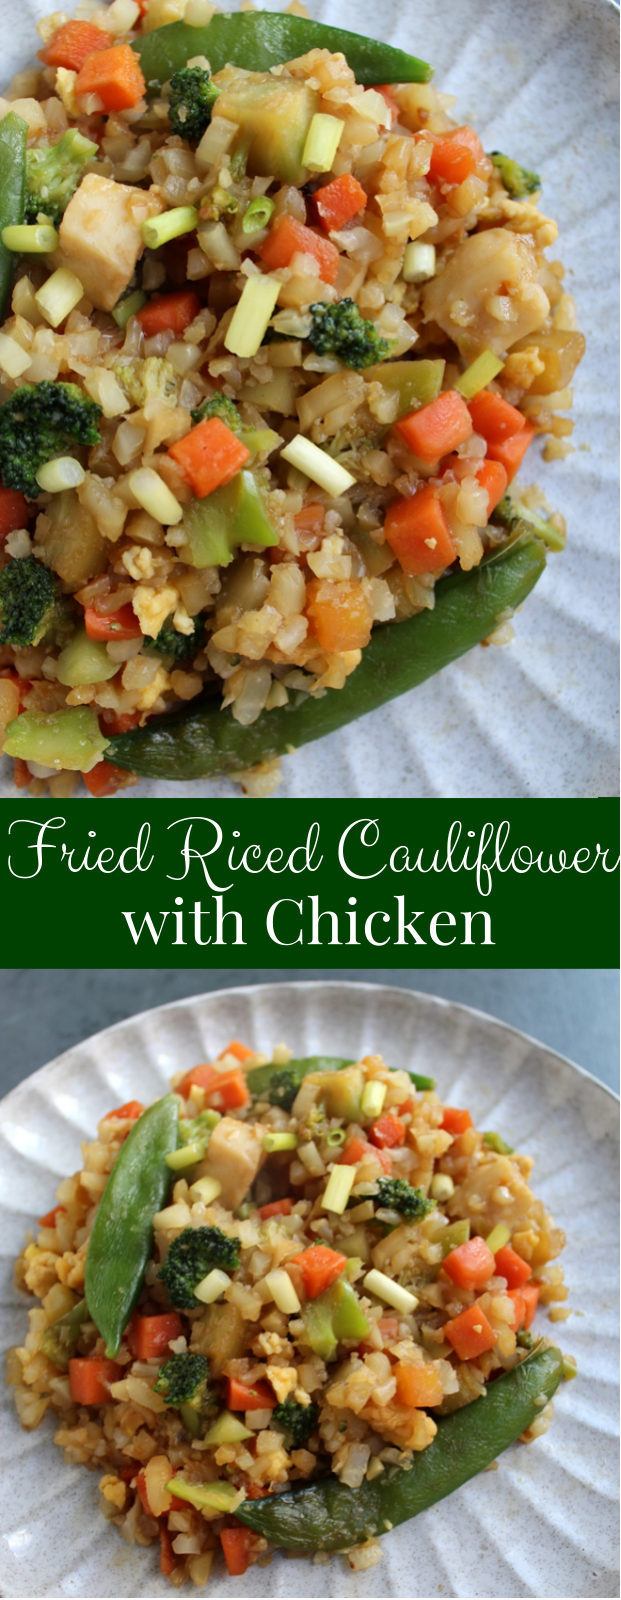 Fried Riced Cauliflower with Chicken uses riced cauliflower instead of traditional rice for extra fiber and vitamins, lots of veggies and is ready in just 15 minutes! #cauliflower #rice #asian #healthy #cleaneating